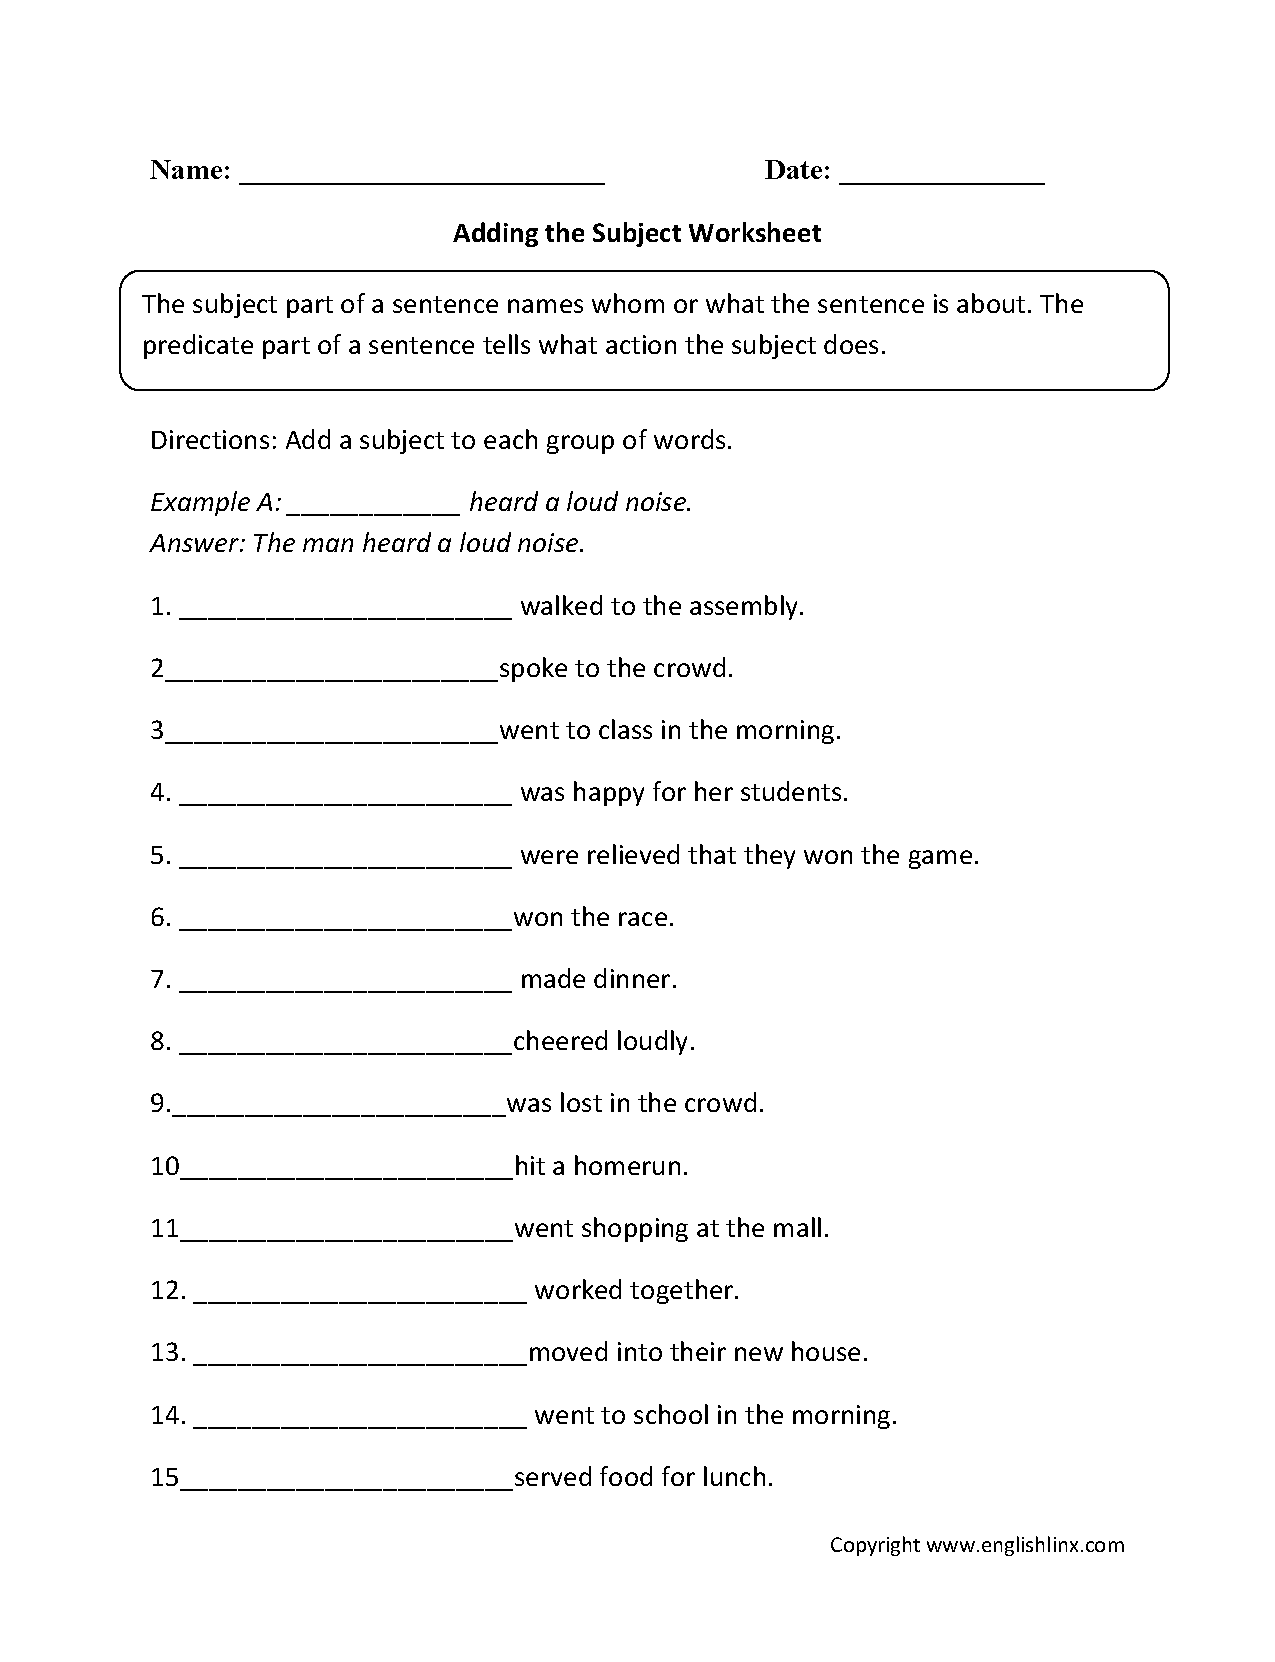 Worksheet 9th Grade English Worksheets Grass Fedjp Worksheet Study Site